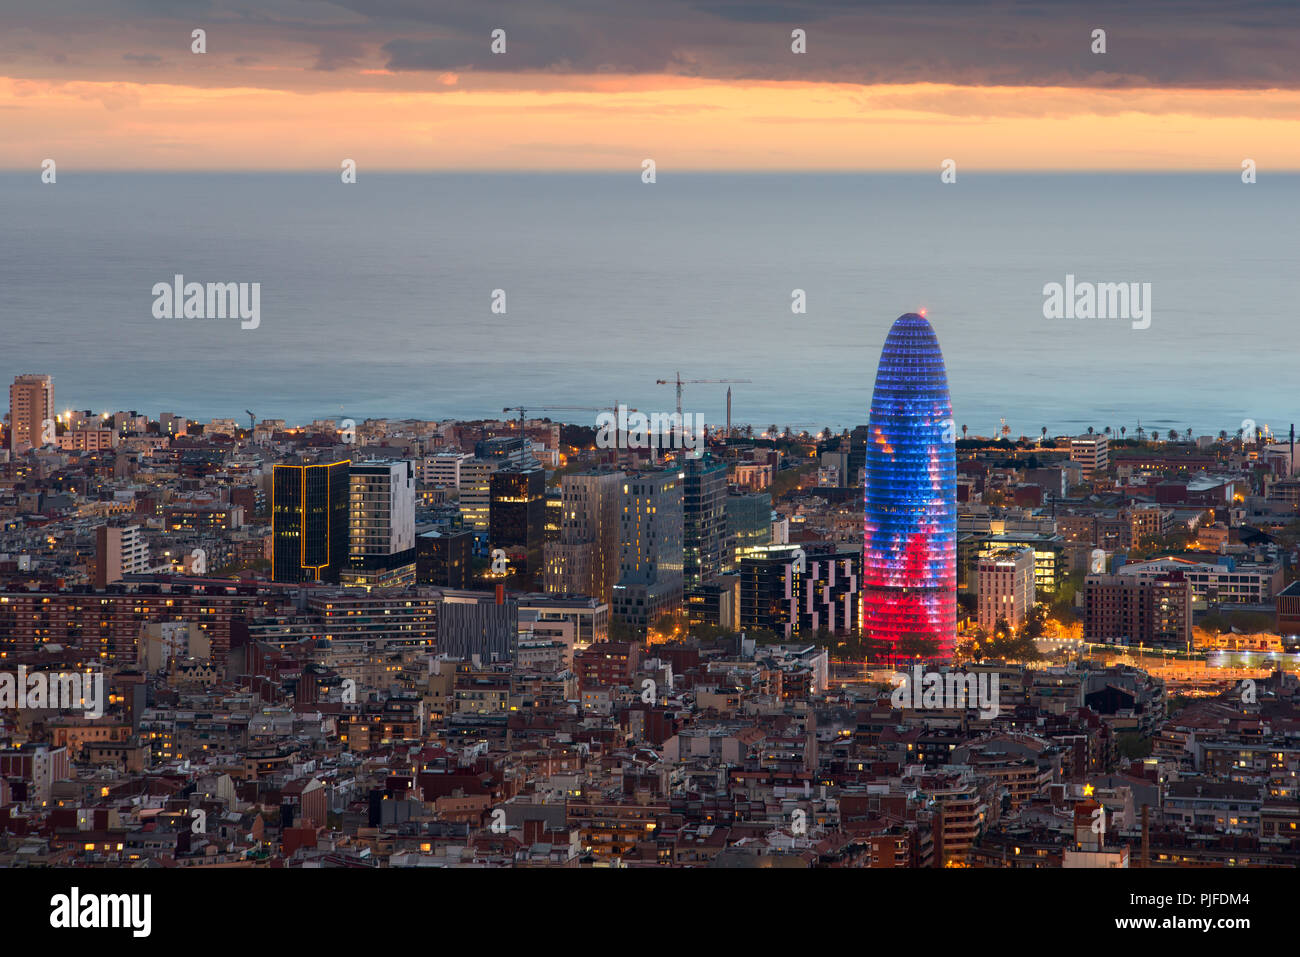 Scenic Aerial View Of Barcelona City Skyscraper And Skyline At Night In Barcelona Spain Stock Photo Alamy